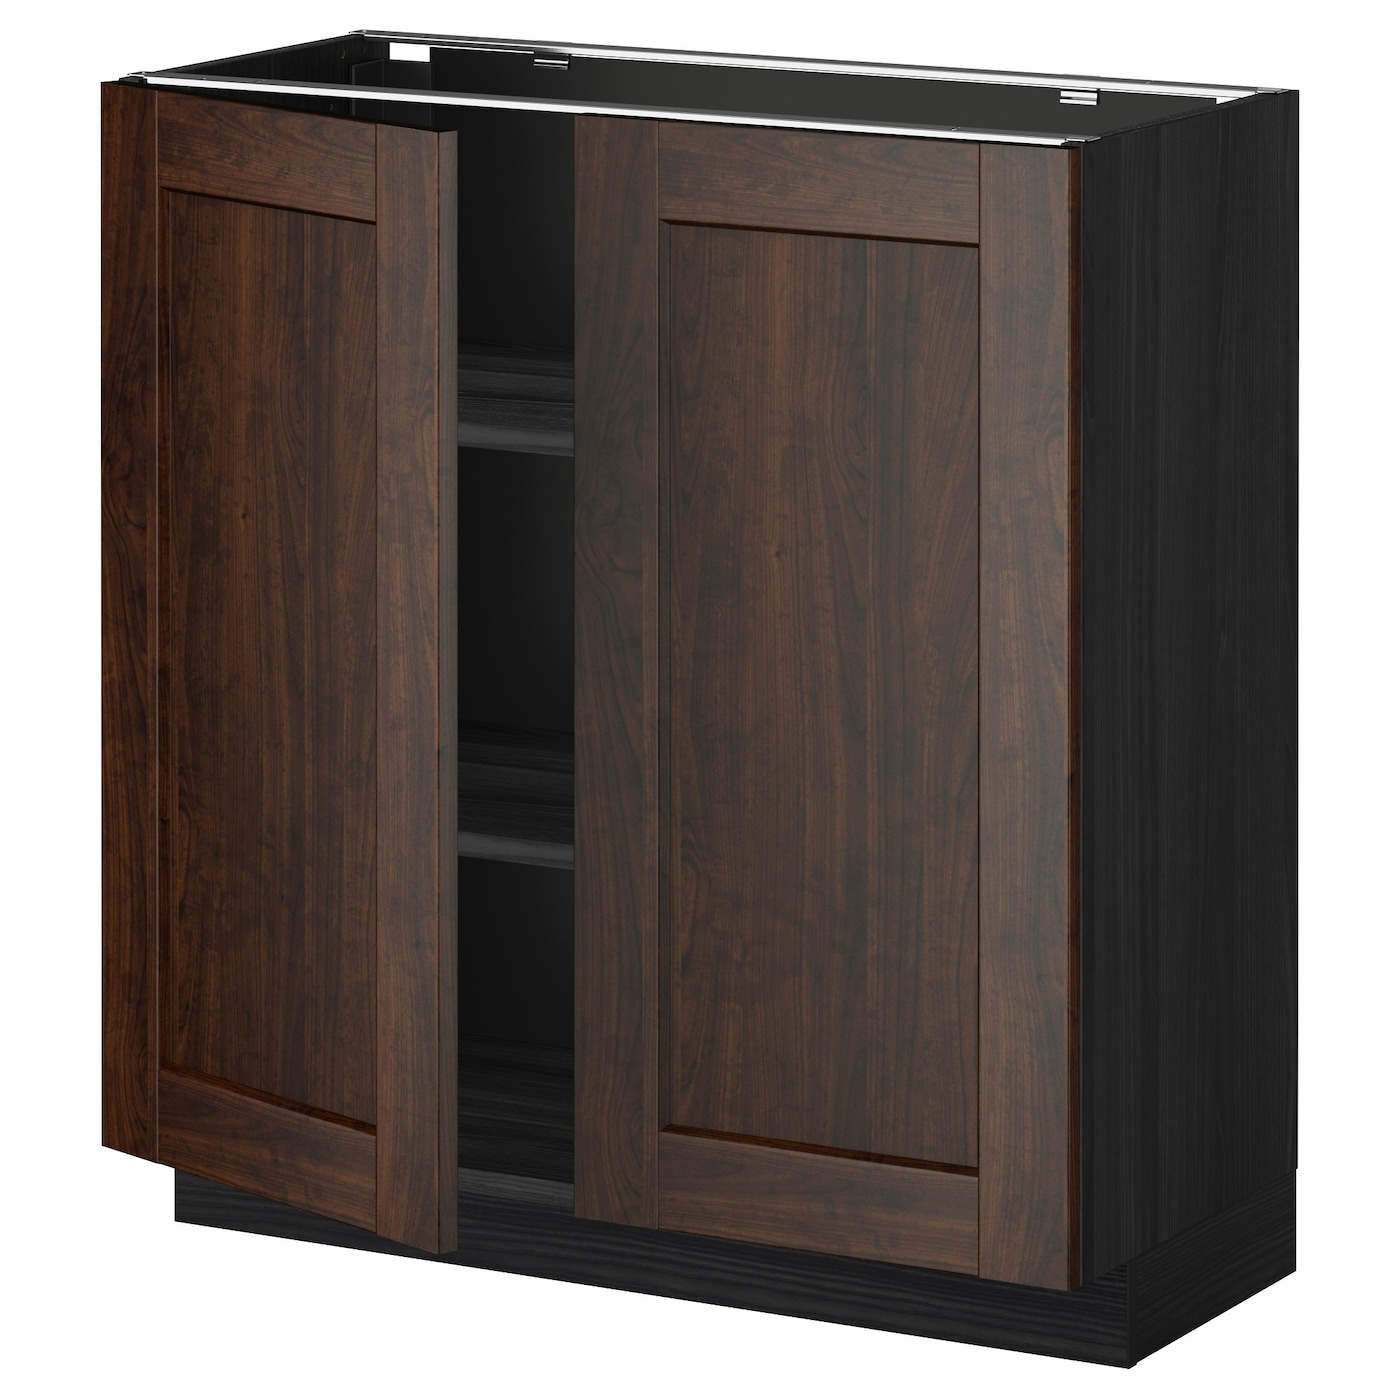 Metod base cabinet with shelves 2 doors black edserum - Ikea cabinet doors on existing cabinets ...